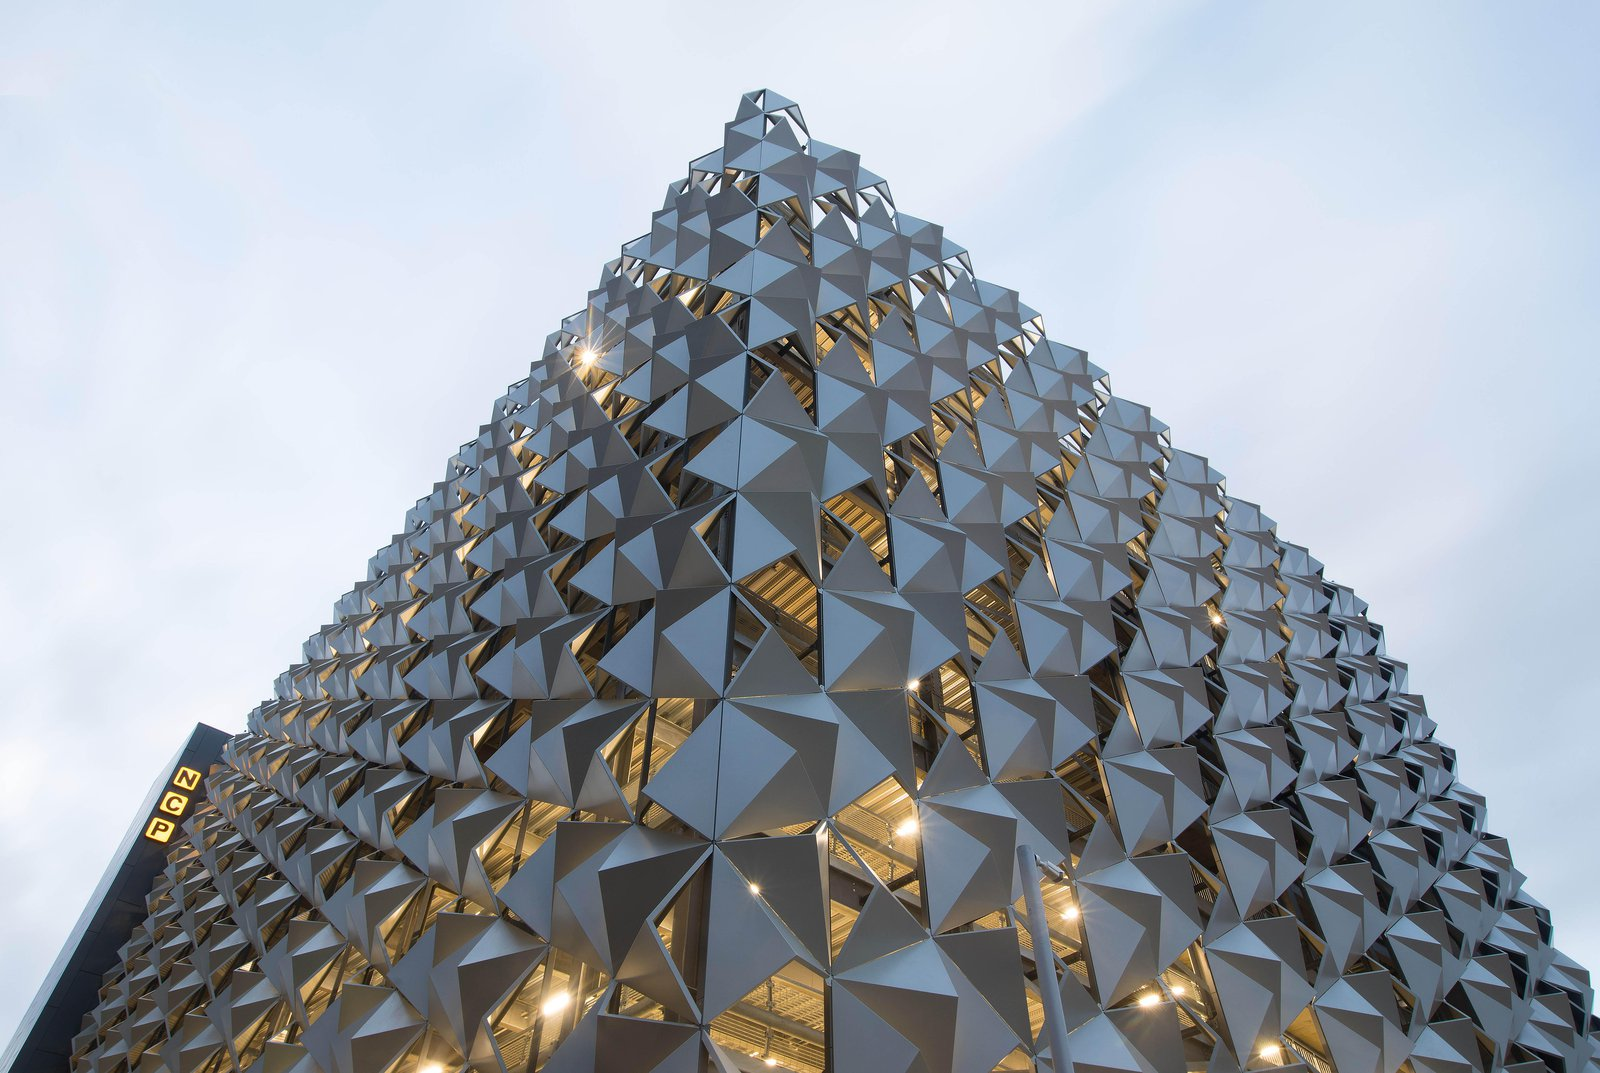 Image of the completed New Bailey Car Park in Salford, showing the architectural metal cladding surrounding the structure